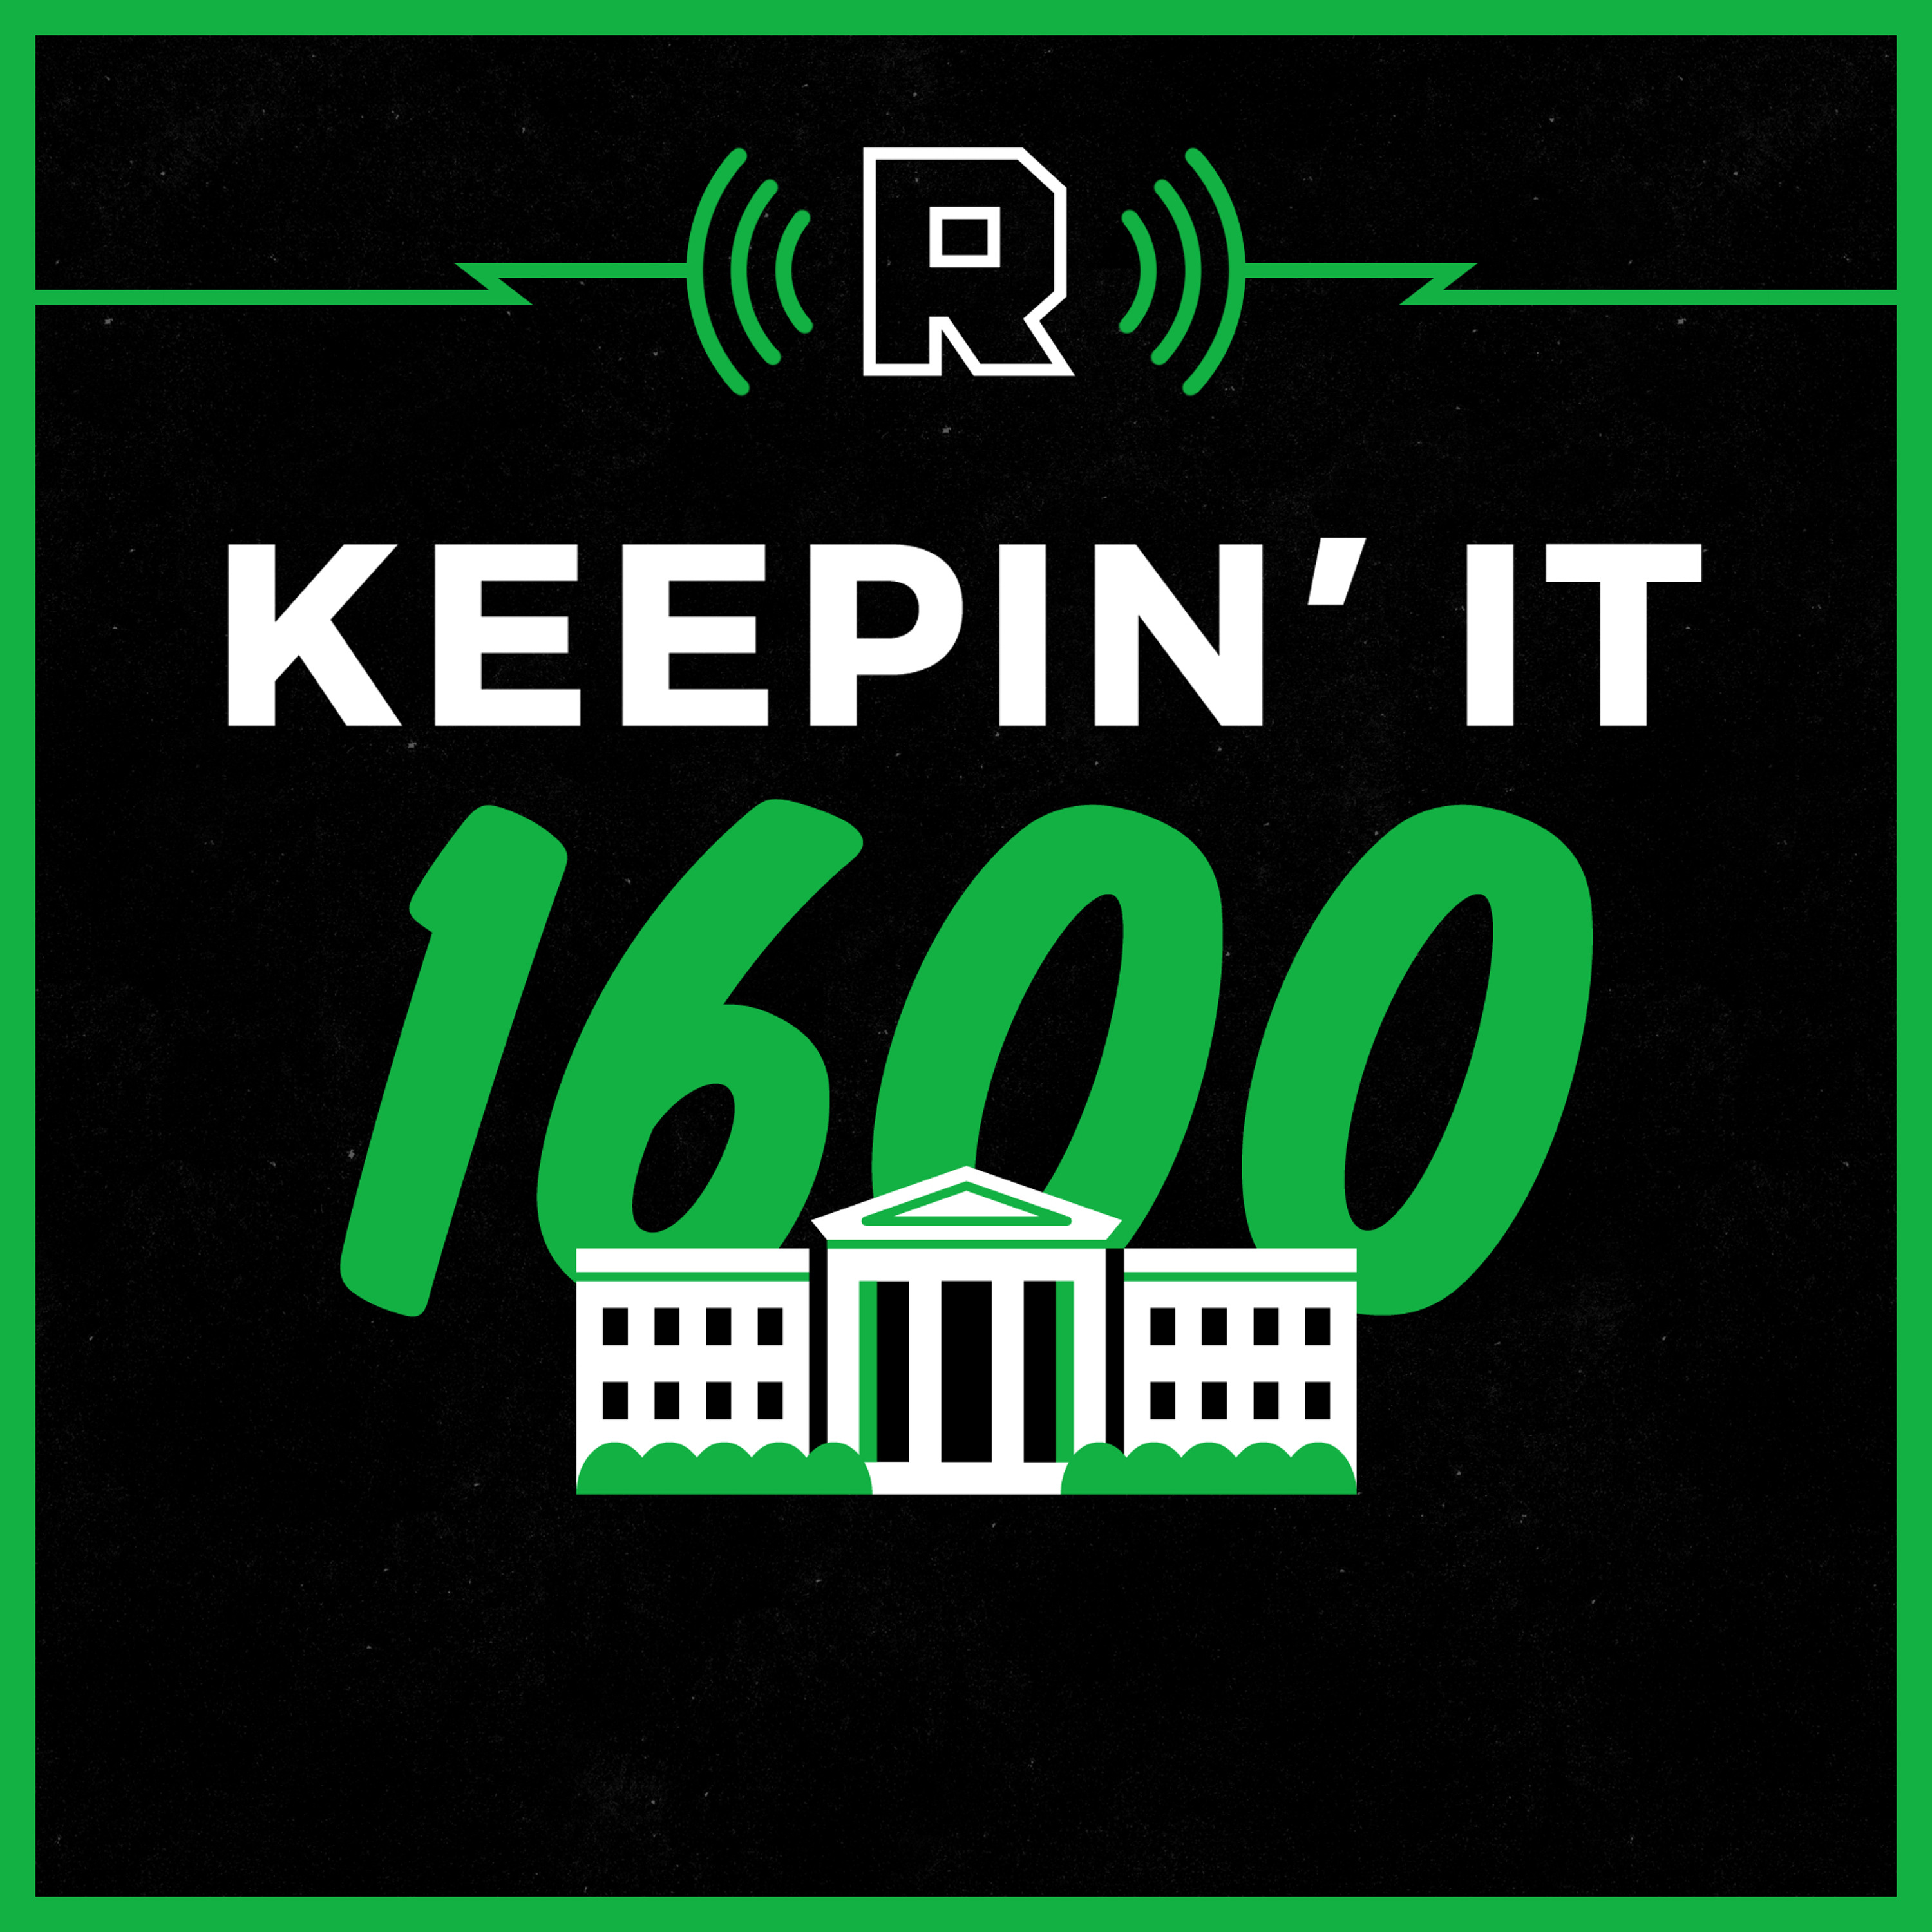 Ep. 61: Merry Electoral College Day With Ana Navarro